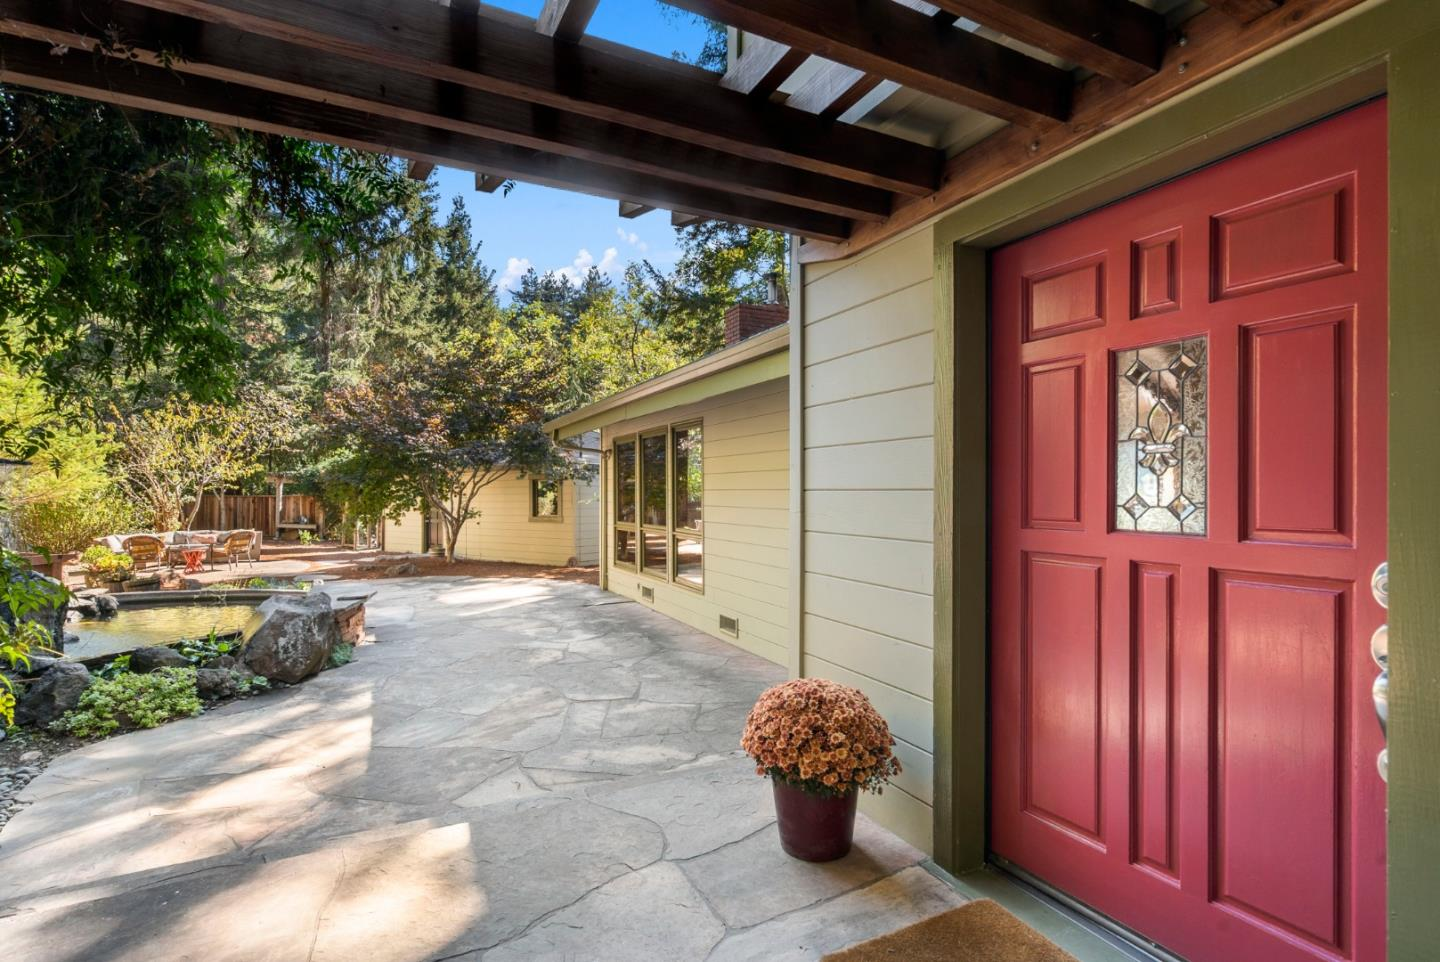 Situated between Scotts Valley & Santa Cruz, this epic home w/ guest house peer into the canopy of the coastal redwoods. Main 3 BR/ 2.5 BA home offers vaulted ceilings, exposed beams, & refinished wood floors. The stylish kitchen with new appliances flanks the dining room with cozy fireplace along with entrance, via spiral staircase, to the cellar below. Gorgeous primary bathroom with dual sink vanity utilizes many windows to capture the stunning perch of the second floor view from the freestanding tub. Separate 1 BR/ 1 BA ADU great for extended family or a private office fit with its own washer/ dryer hookup. A natural courtyard is created featuring stone pathways & tranquil waterfall koi pond. Venture down the terraced steps to the fenced garden area by the creek & follow the drivable dirt road to a red hobby barn fitted with power & ready for projects. Mountain living made easy w/ a quick commute over to Silicon Valley & SJC airport, hiking, mtn biking, & the beaches of Santa Cruz.